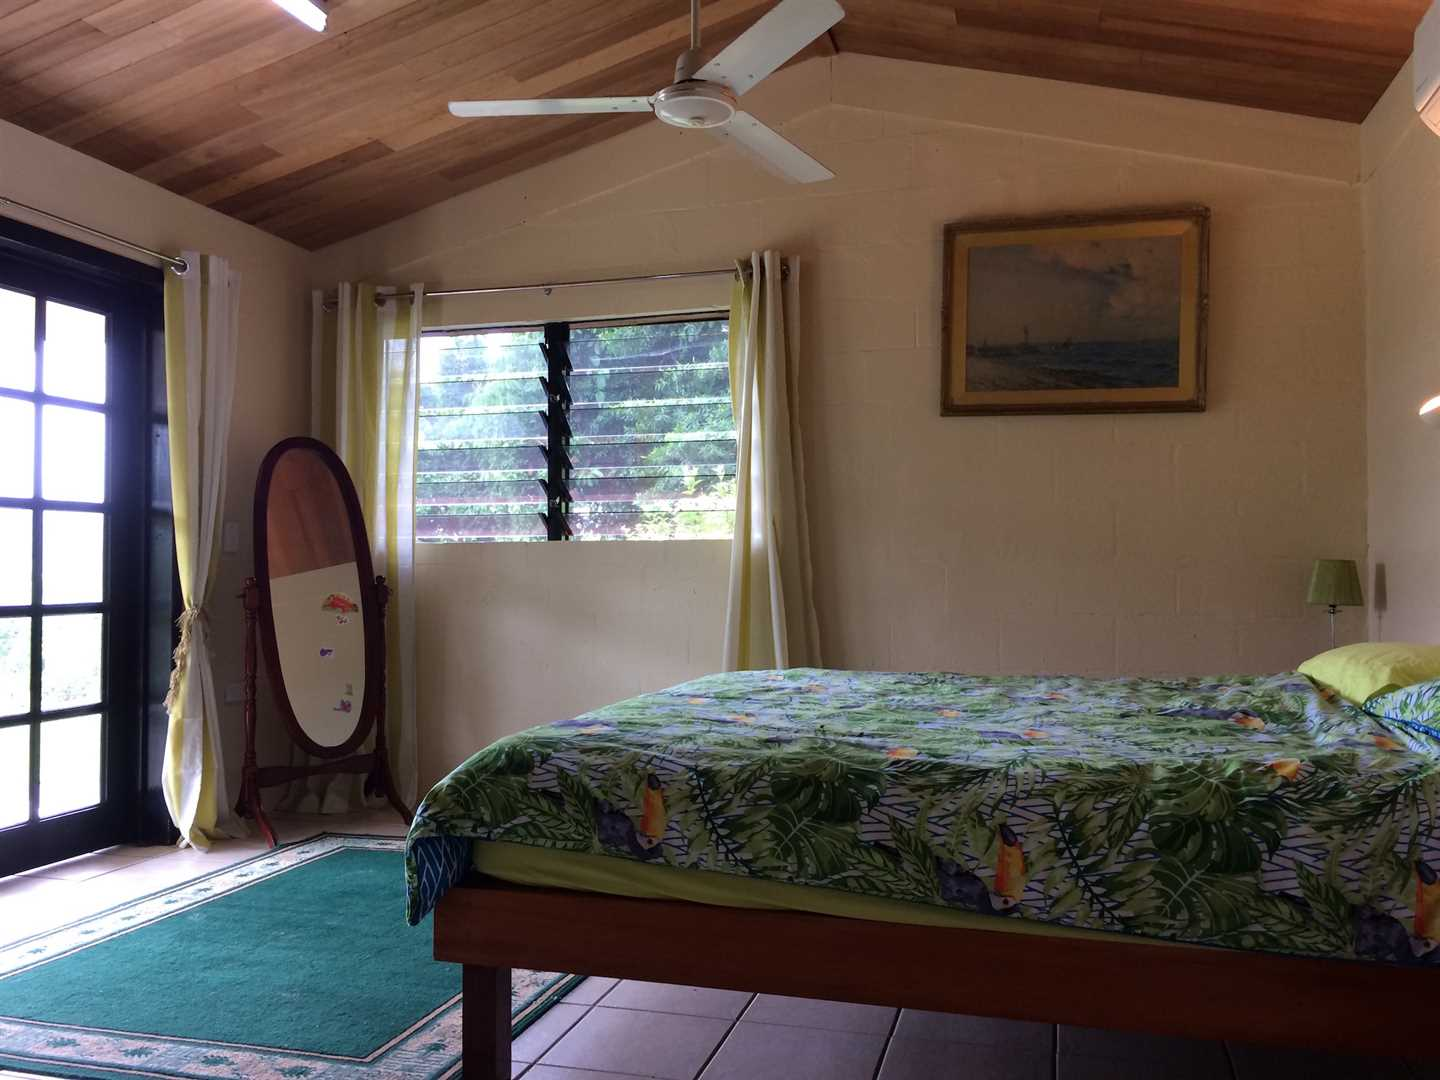 Inside view of part of home showing part of the third bedroom